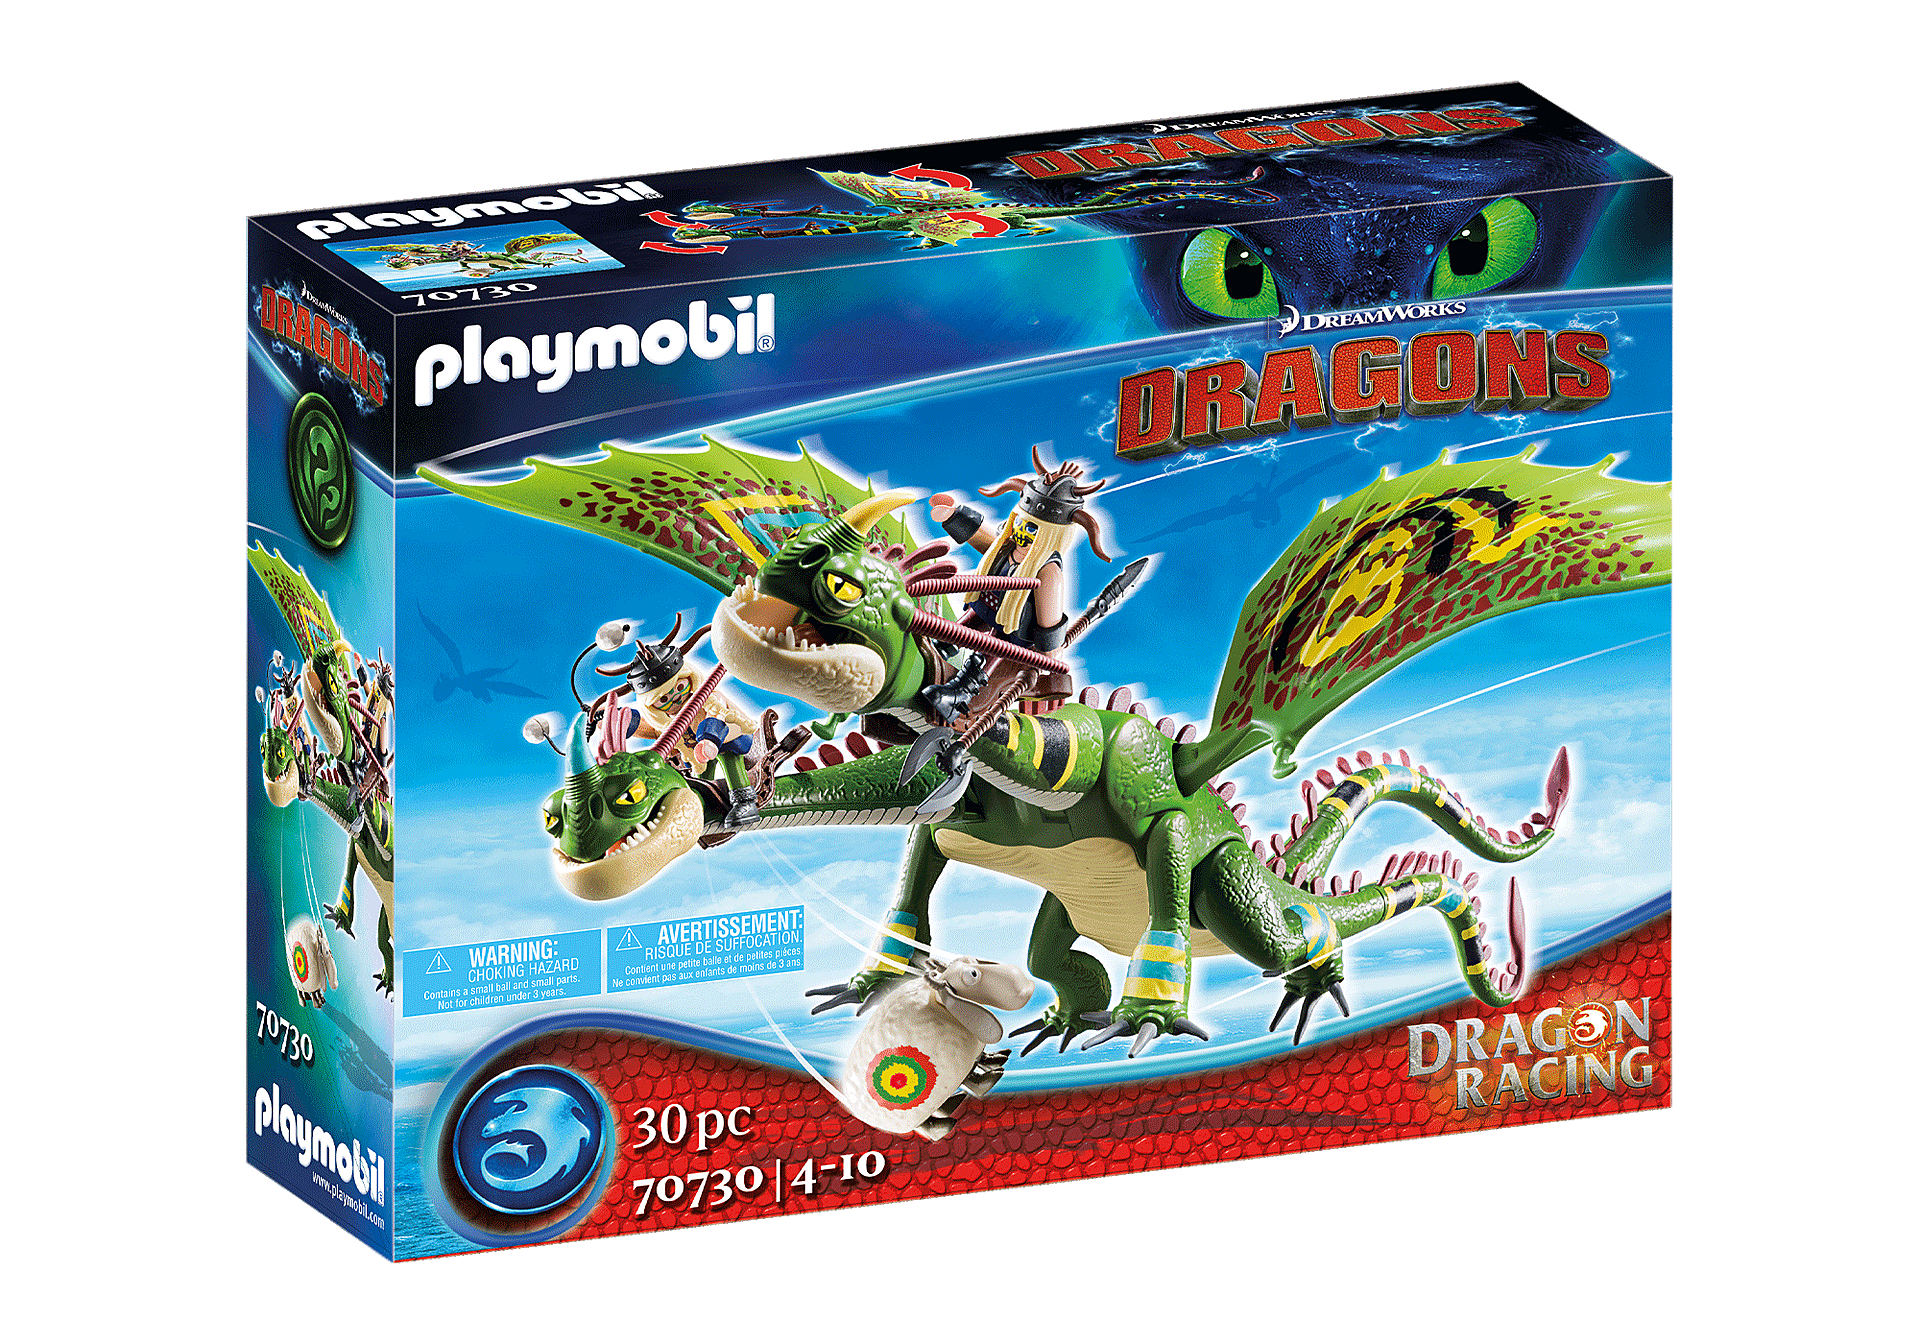 Playmobil - Dragon Racing: Ruffnut and Tuffnut with Barf and Belch (70730)